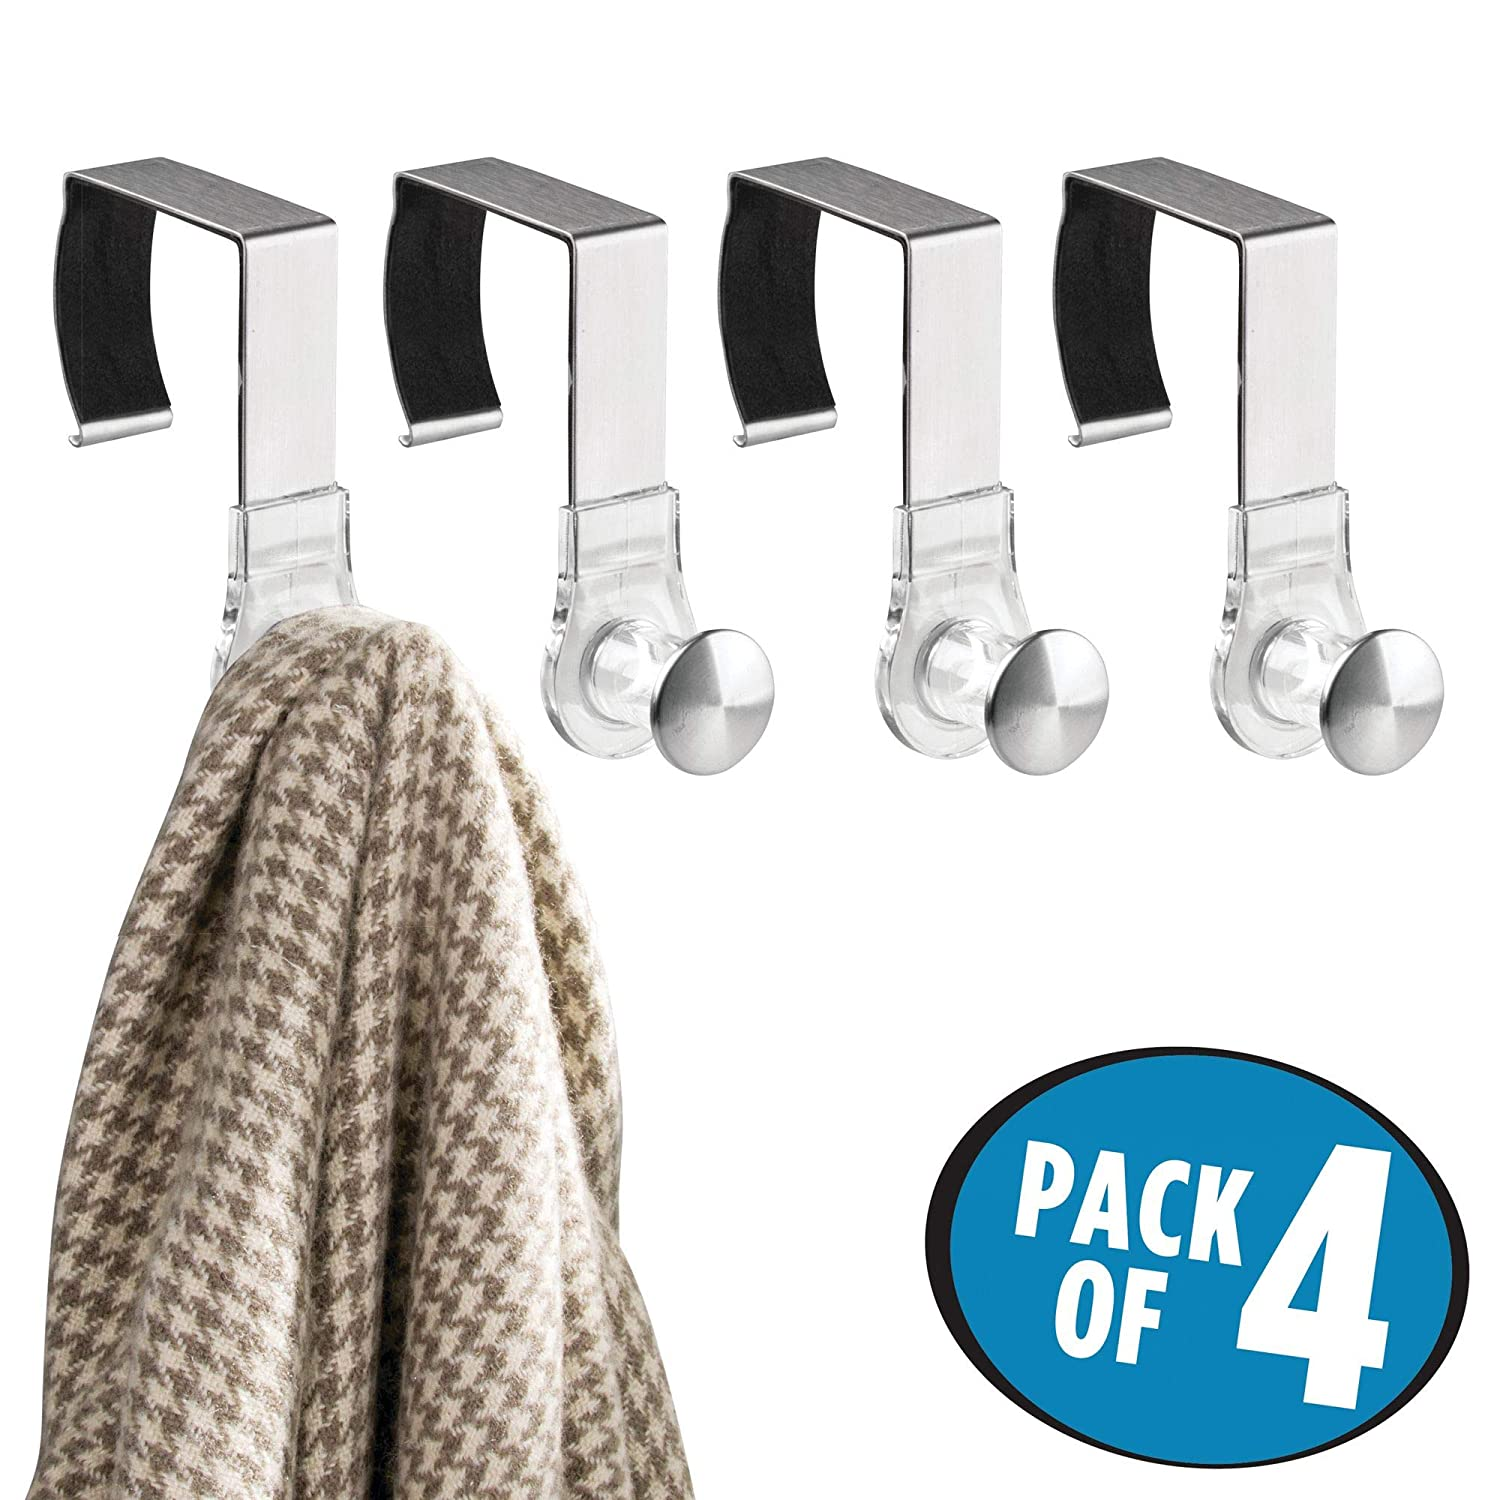 Keychain Bags Wall Panel Hangers for Hanging Accessories Coats Hats Purses mDesign Modern Metal and Plastic Office Over The Cubicle Storage Organizer Hooks 6 Pack Clear//Brushed MetroDecor